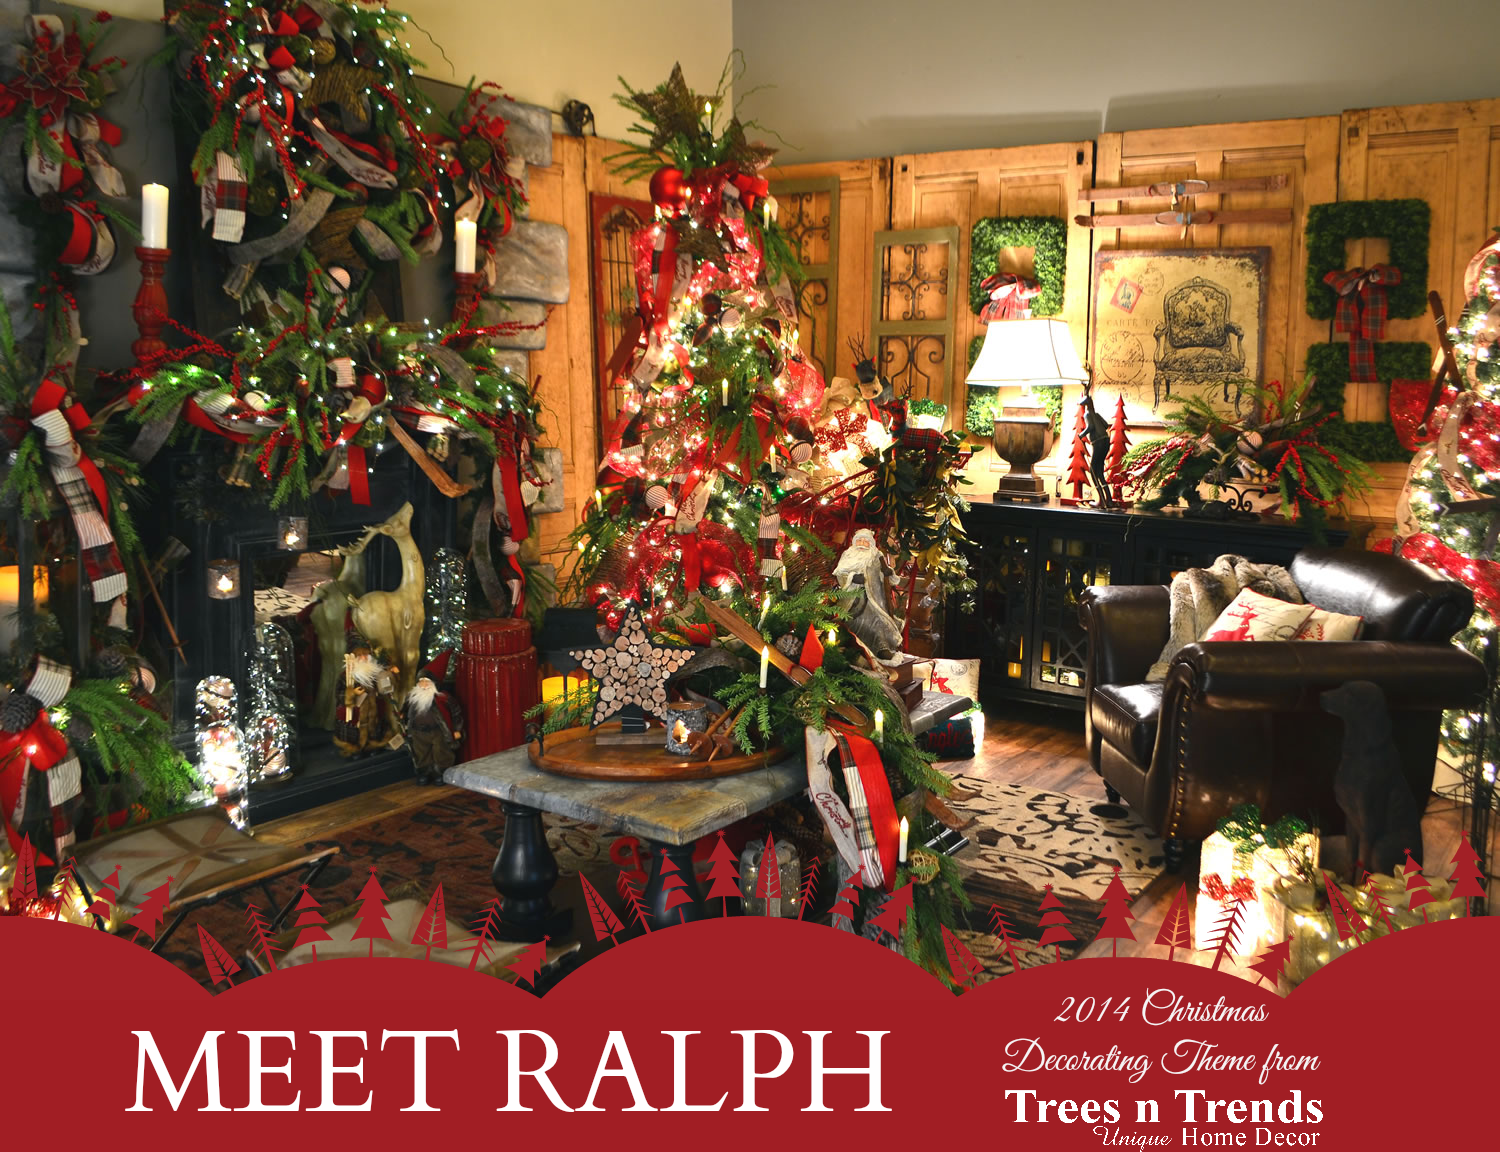 Trees n Trends: A Christmas Decorating Theme for Every Member of the ...